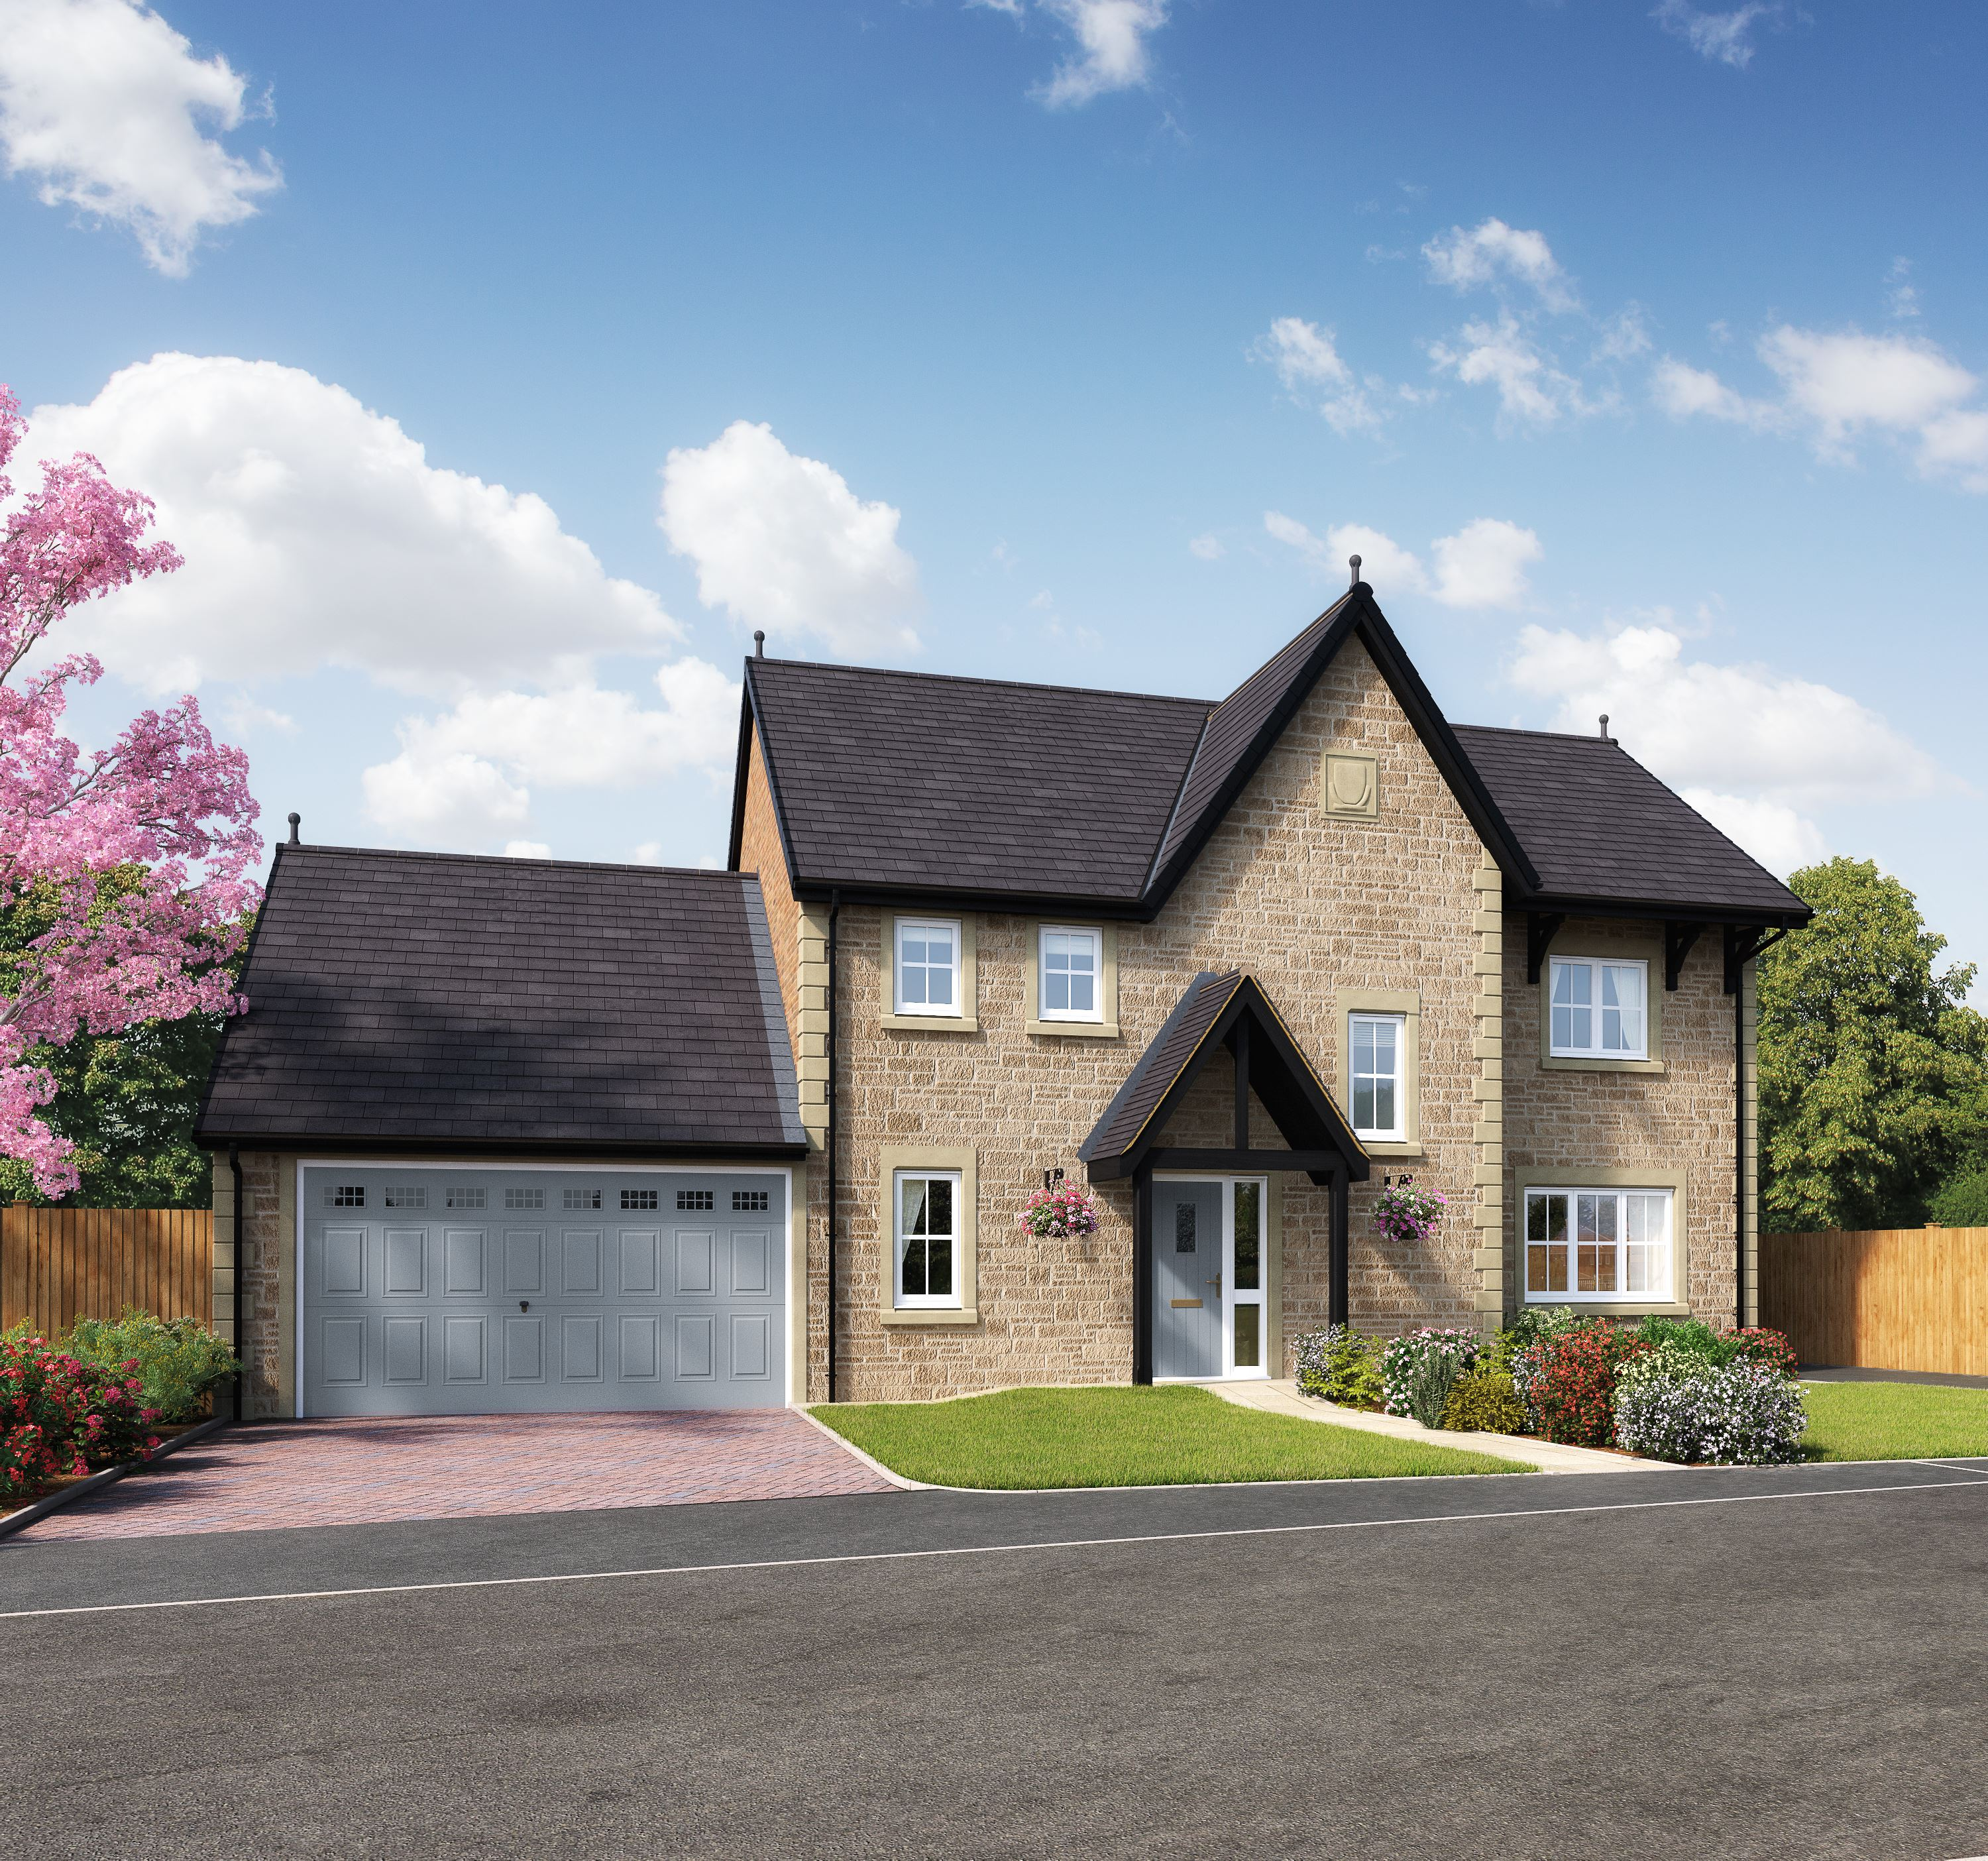 Peachy New Homes Are Revealed At Story Homes Durton Manor Download Free Architecture Designs Scobabritishbridgeorg